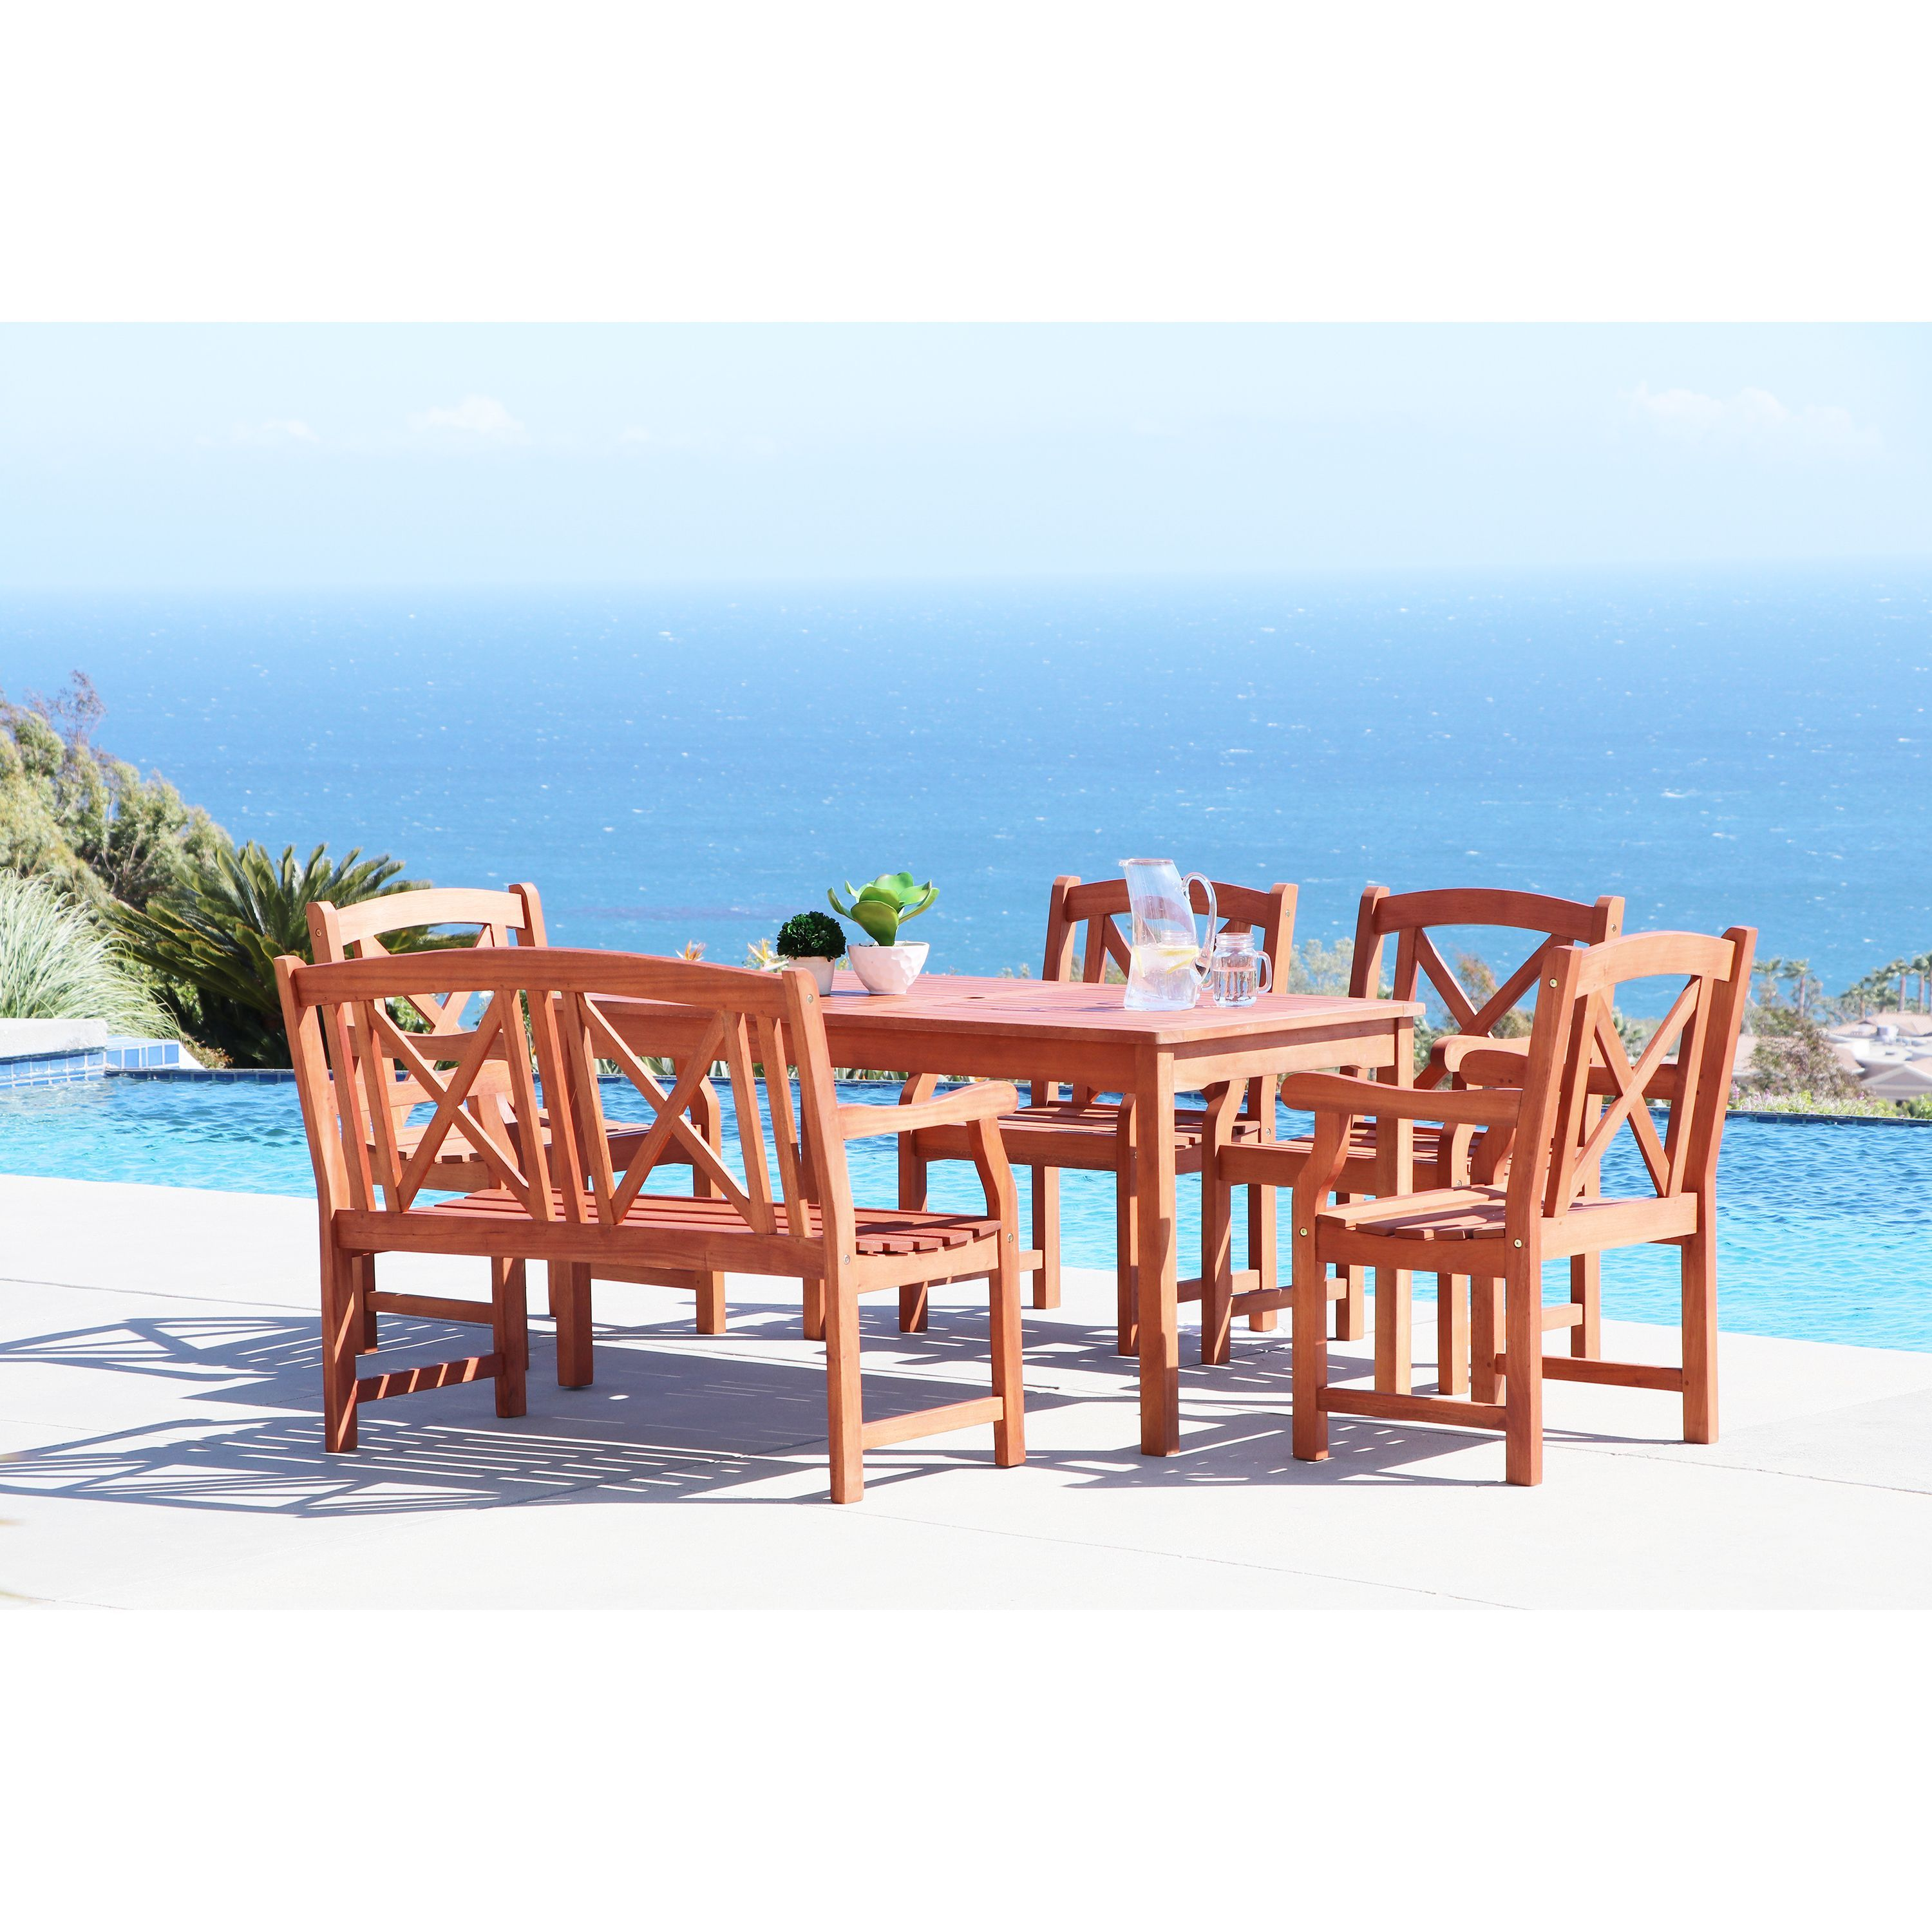 Vifah Malibu Eco Friendly 6 Piece Outdoor Hard Dining Set With Recgle Table 4 Foot Bench And Arm Chairs Patio Furniture Outdoor Dining Set Wood Patio Outdoor Dining